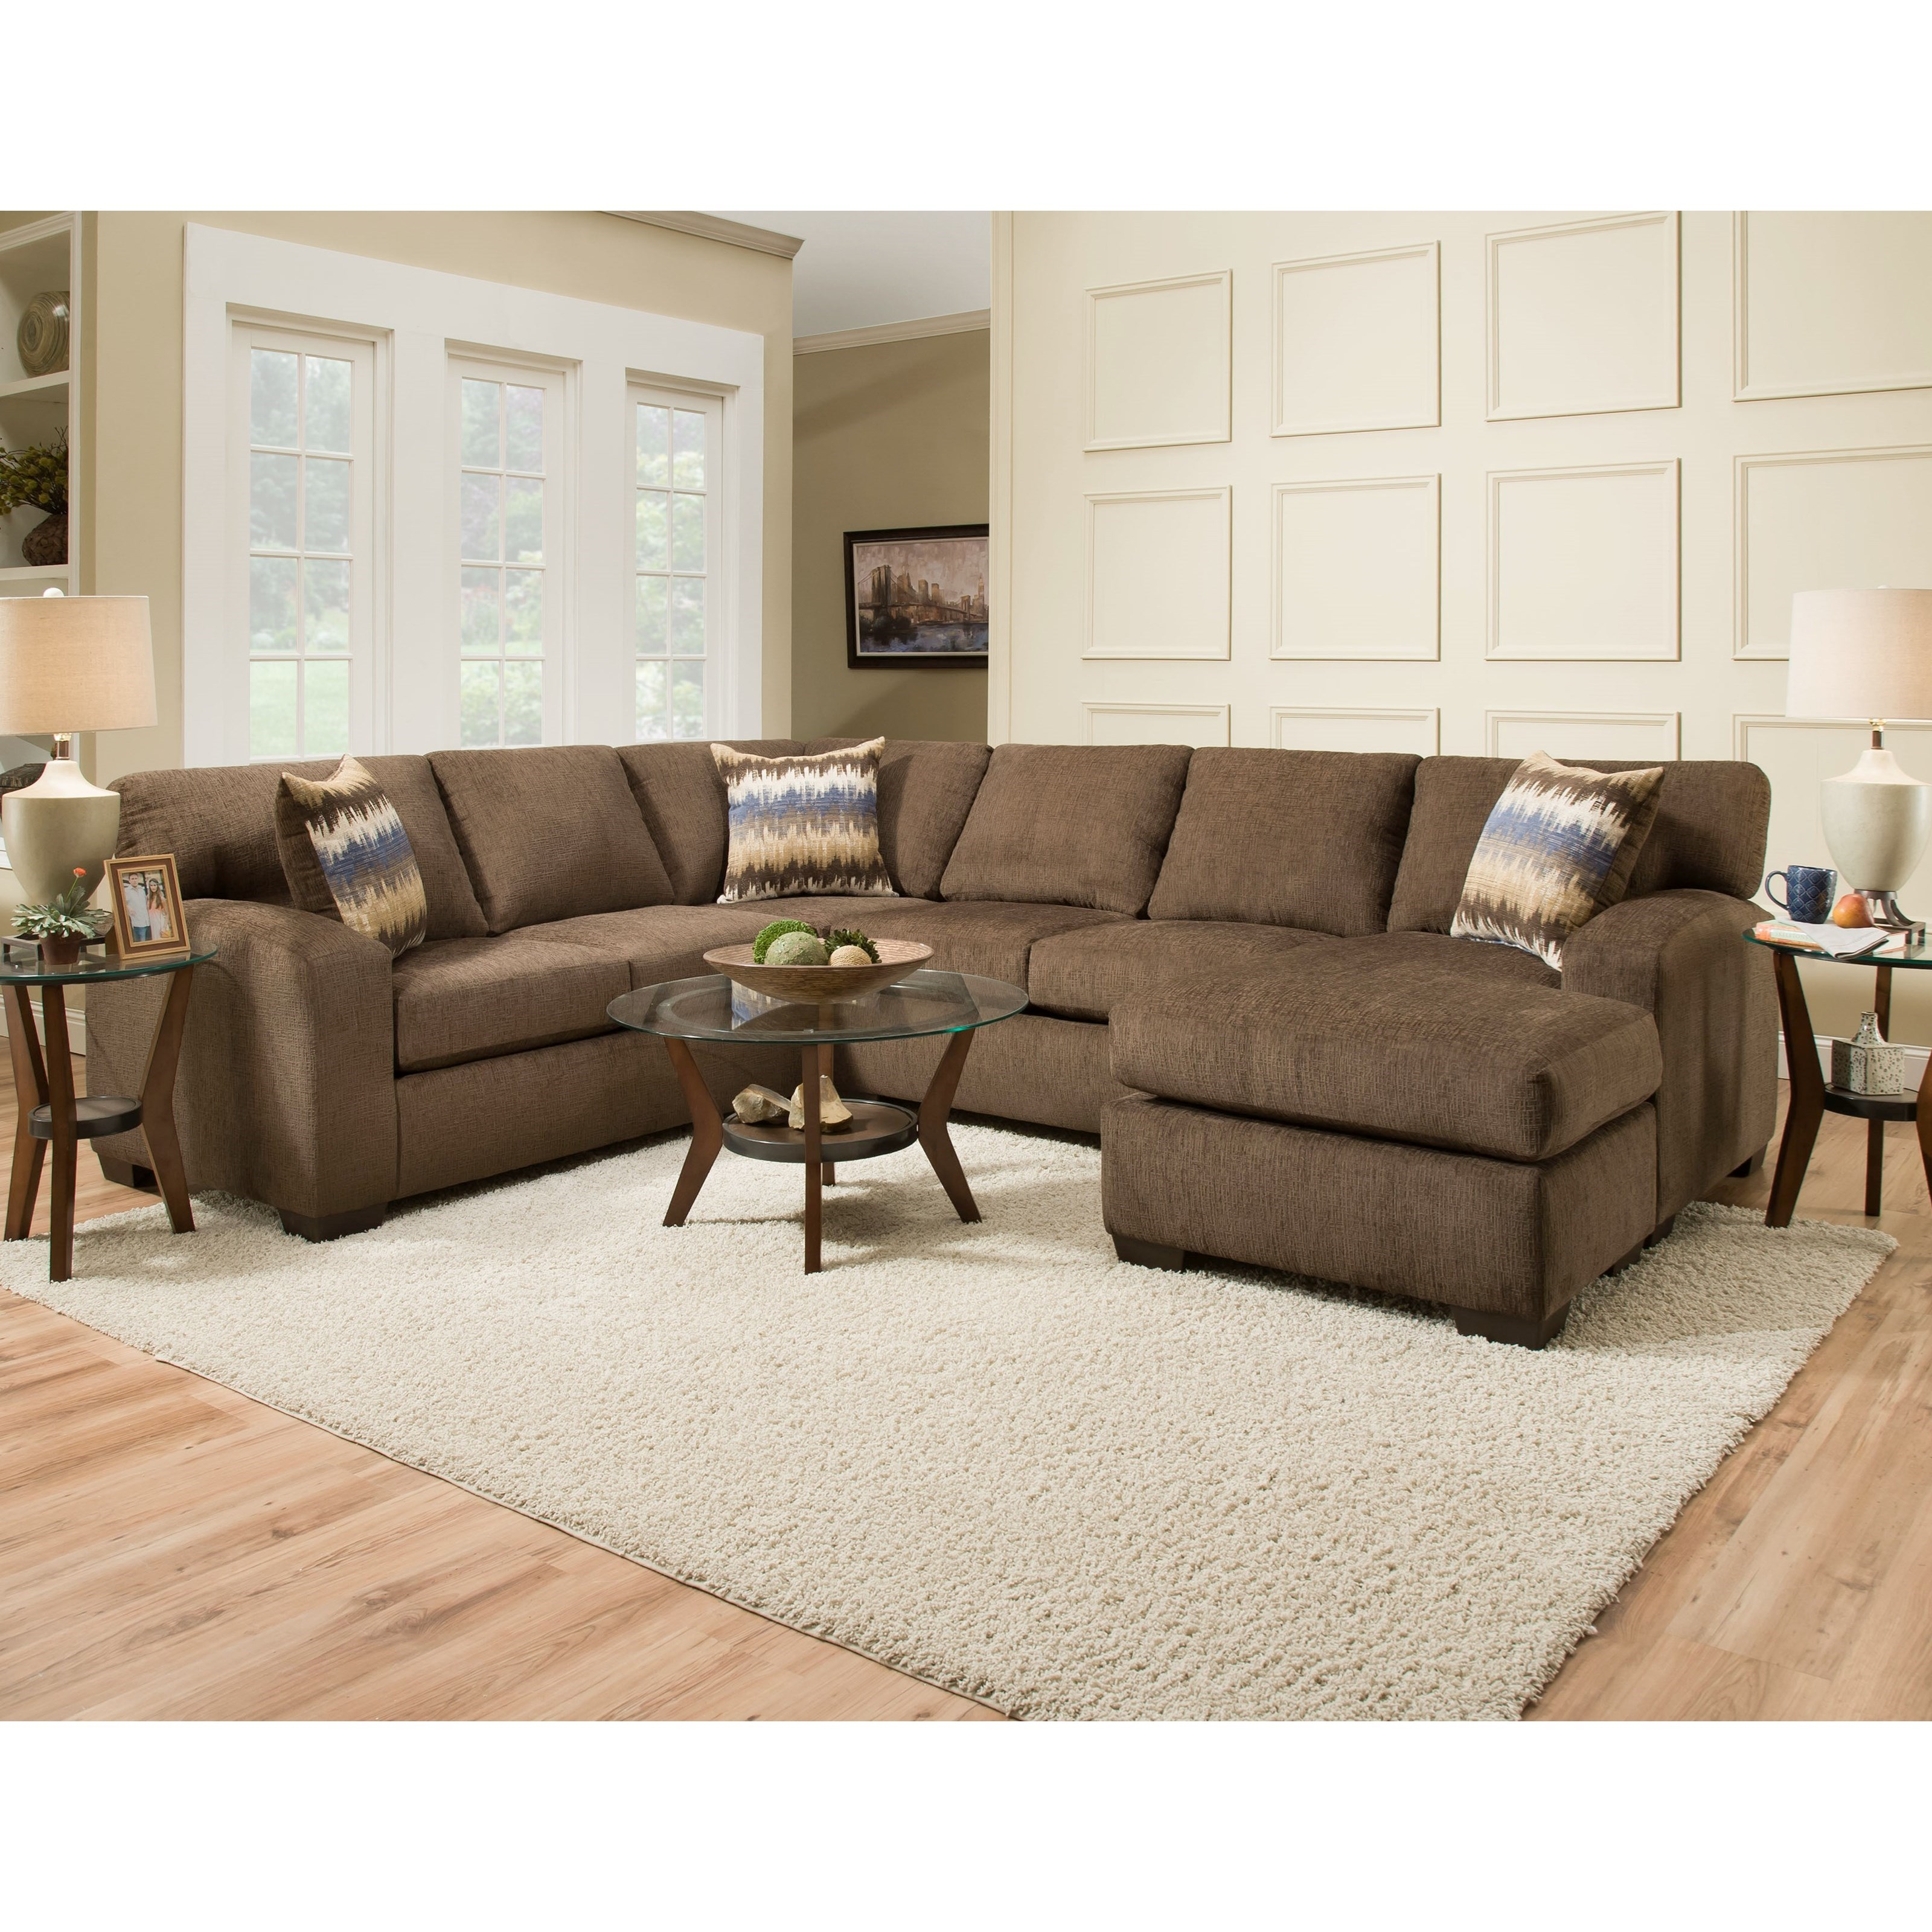 5250 Sectional Sofa - Seats 5 by Peak Living at Prime Brothers Furniture